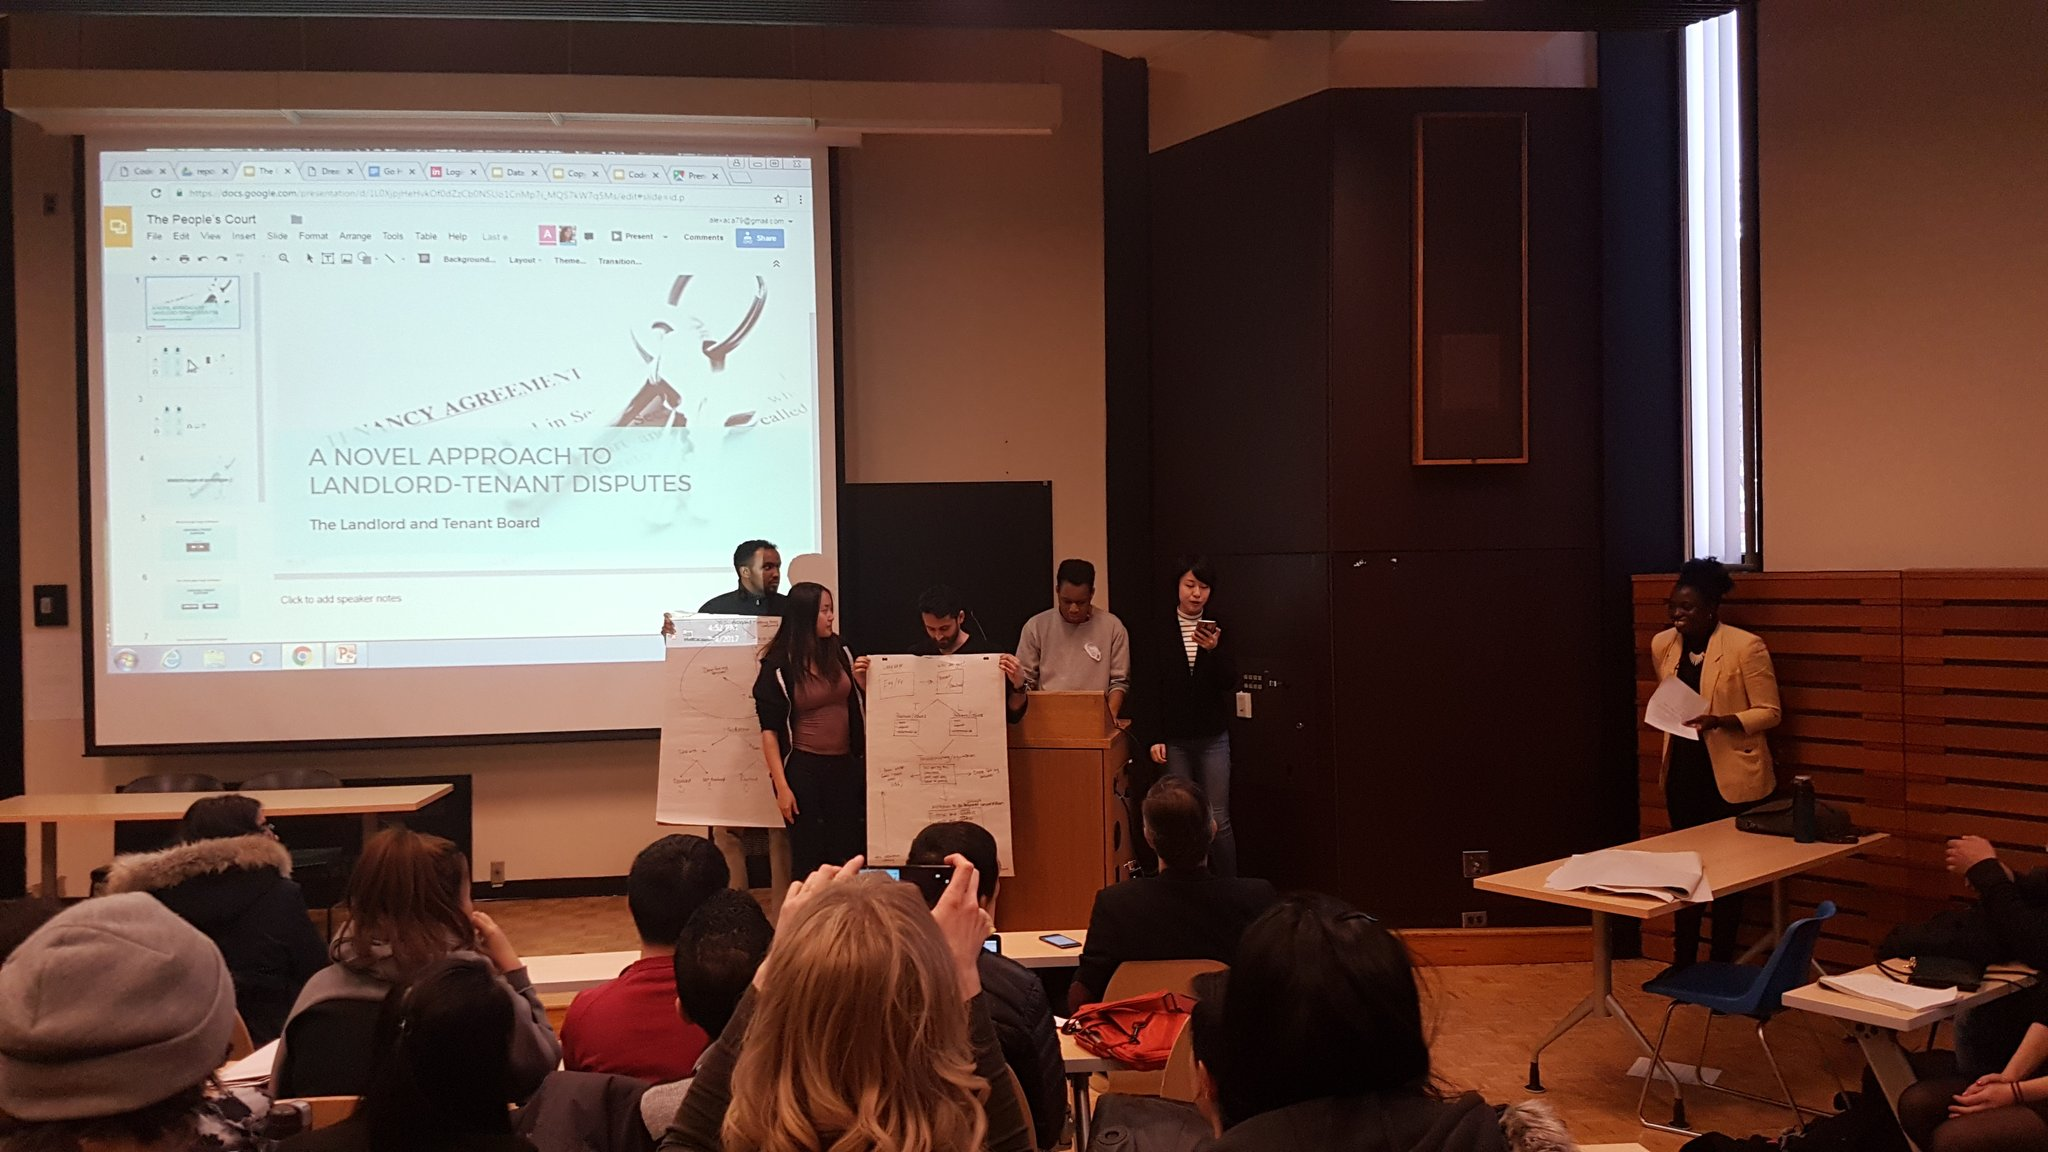 Pitched at #CodeAcrossTO : Create a portal to allow landlords and tenants to speak directly. They'd never set foot in a tribunal. #onpoli https://t.co/KJ1xka8jem